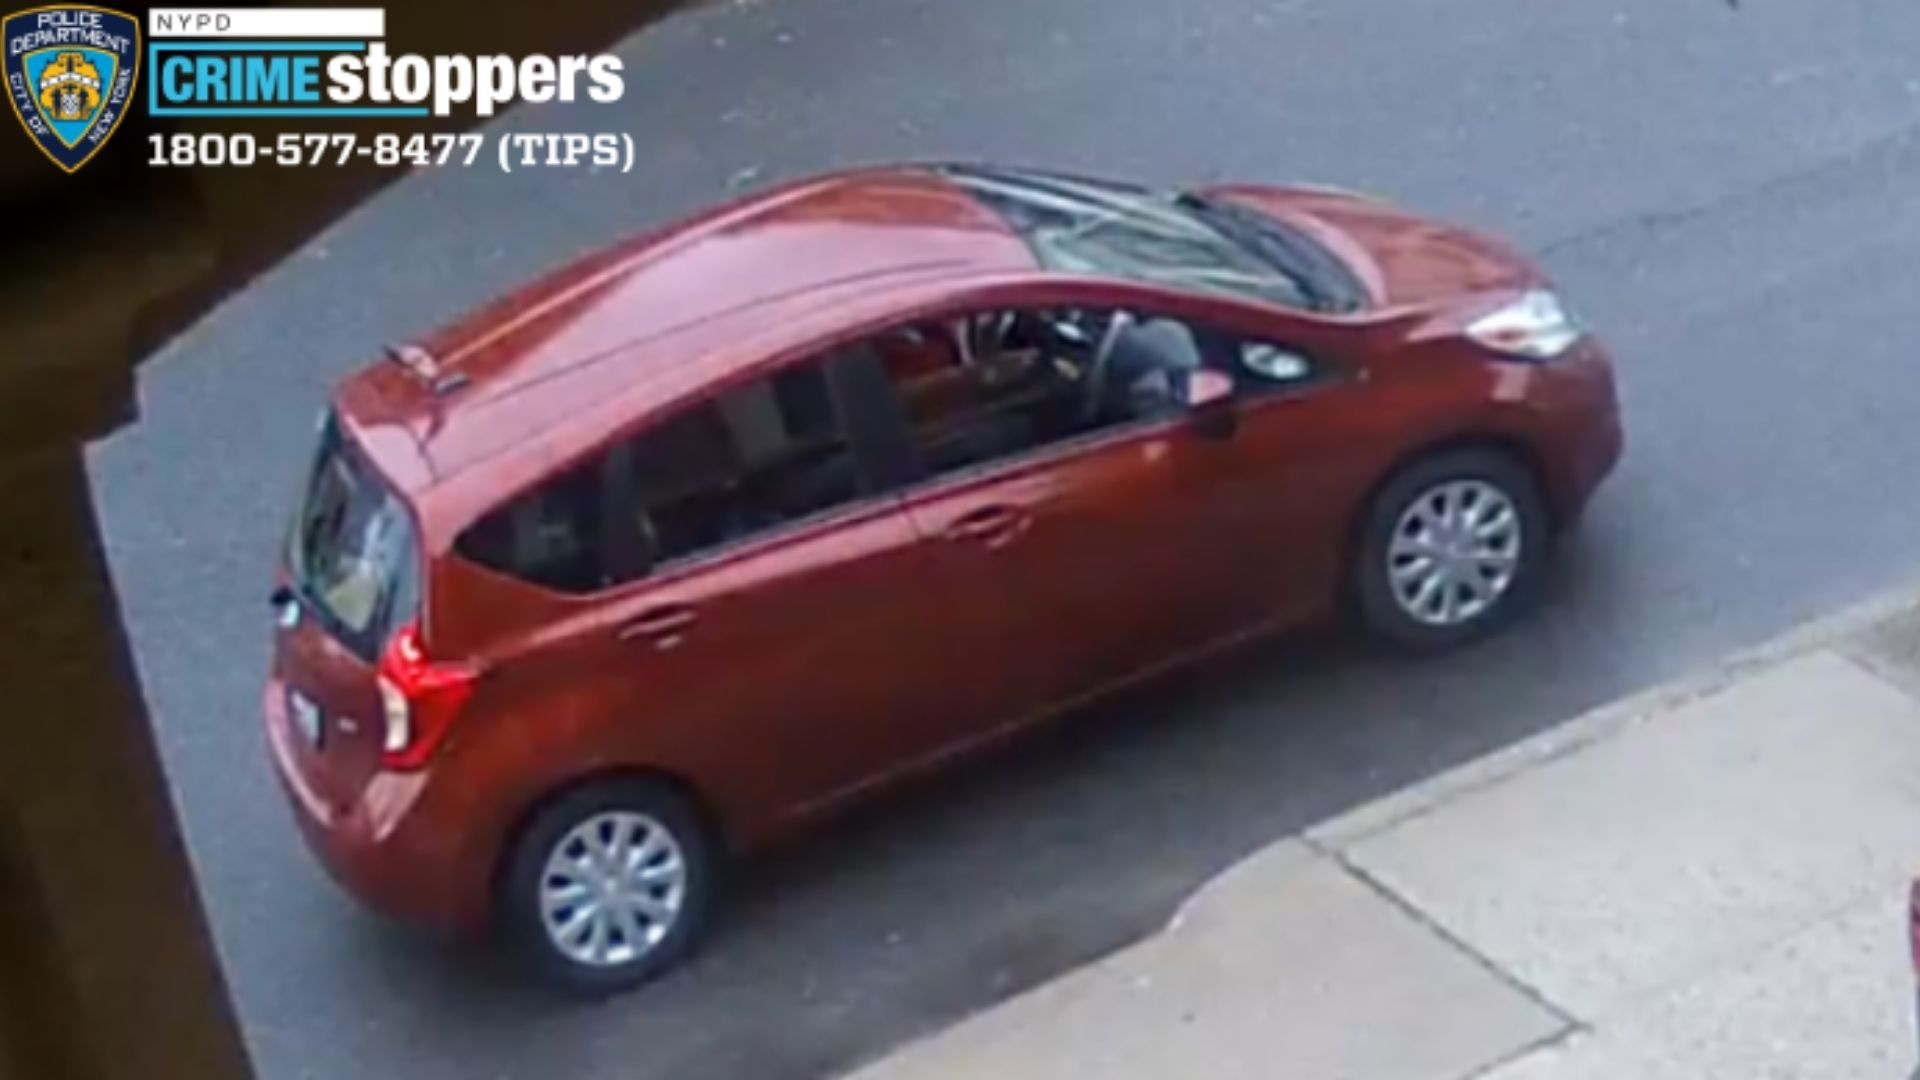 brooklyn attempted luring suspect's vehicle